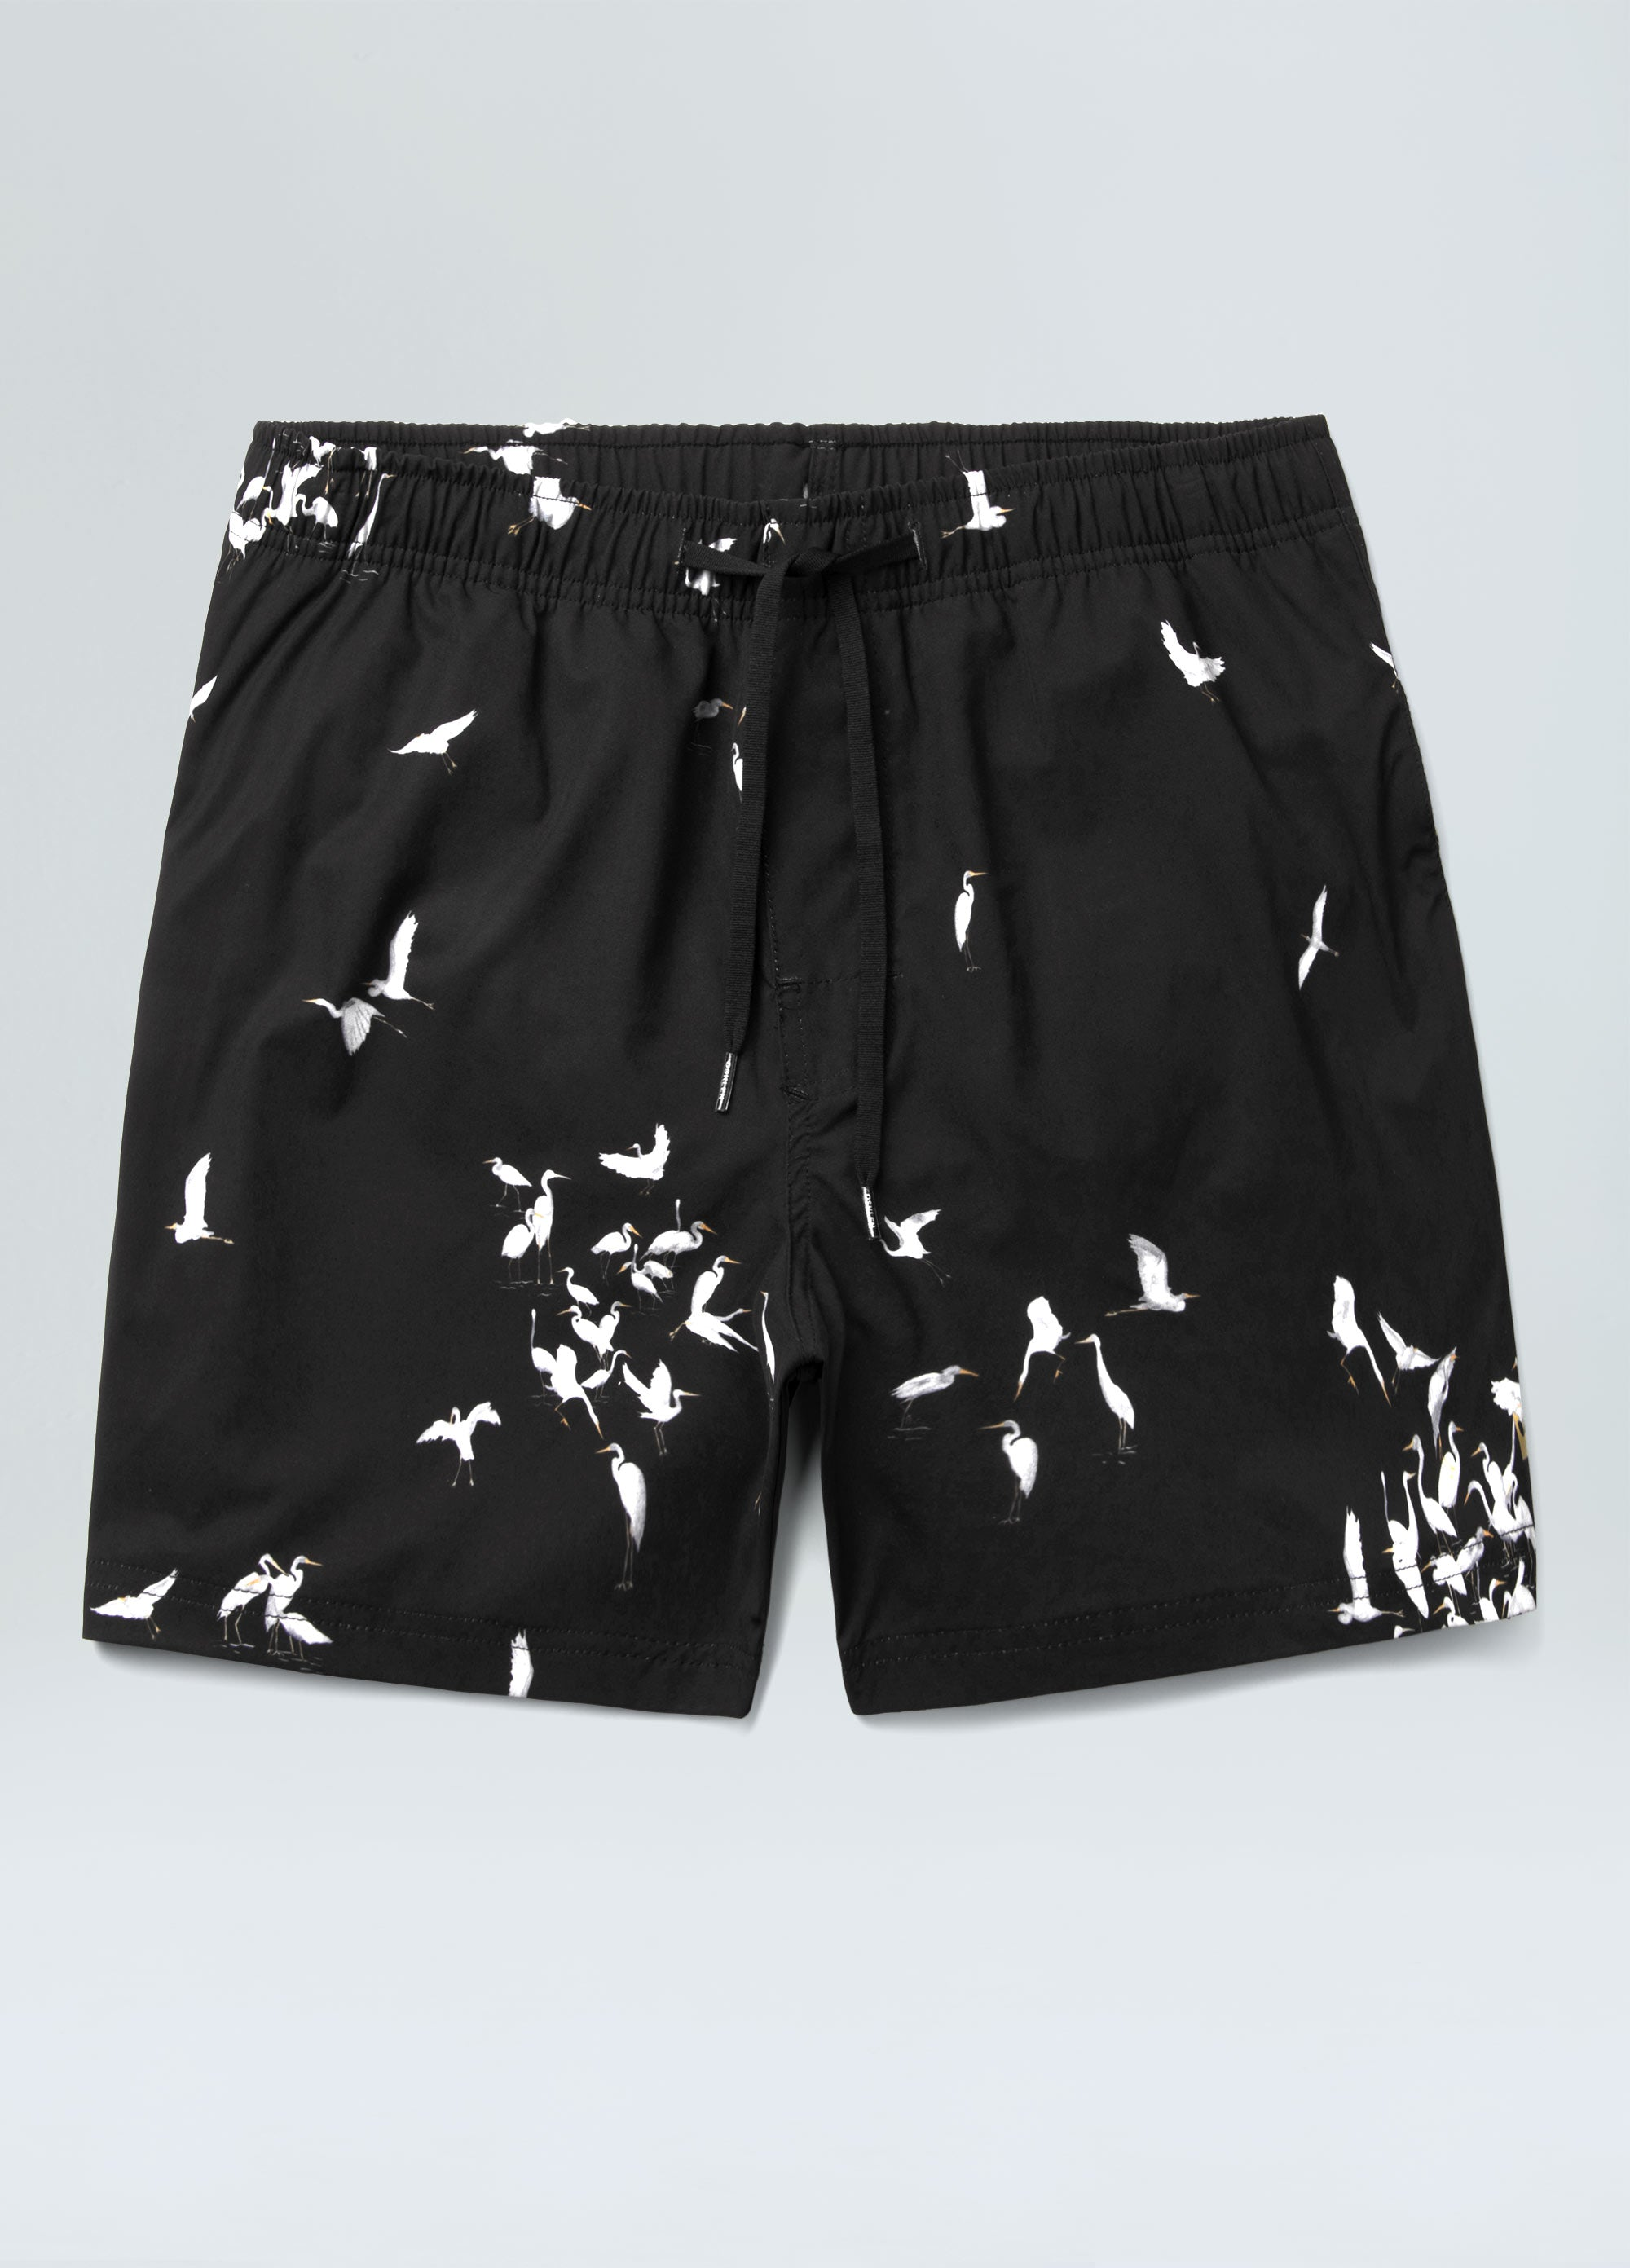 Heron Beach Shorts